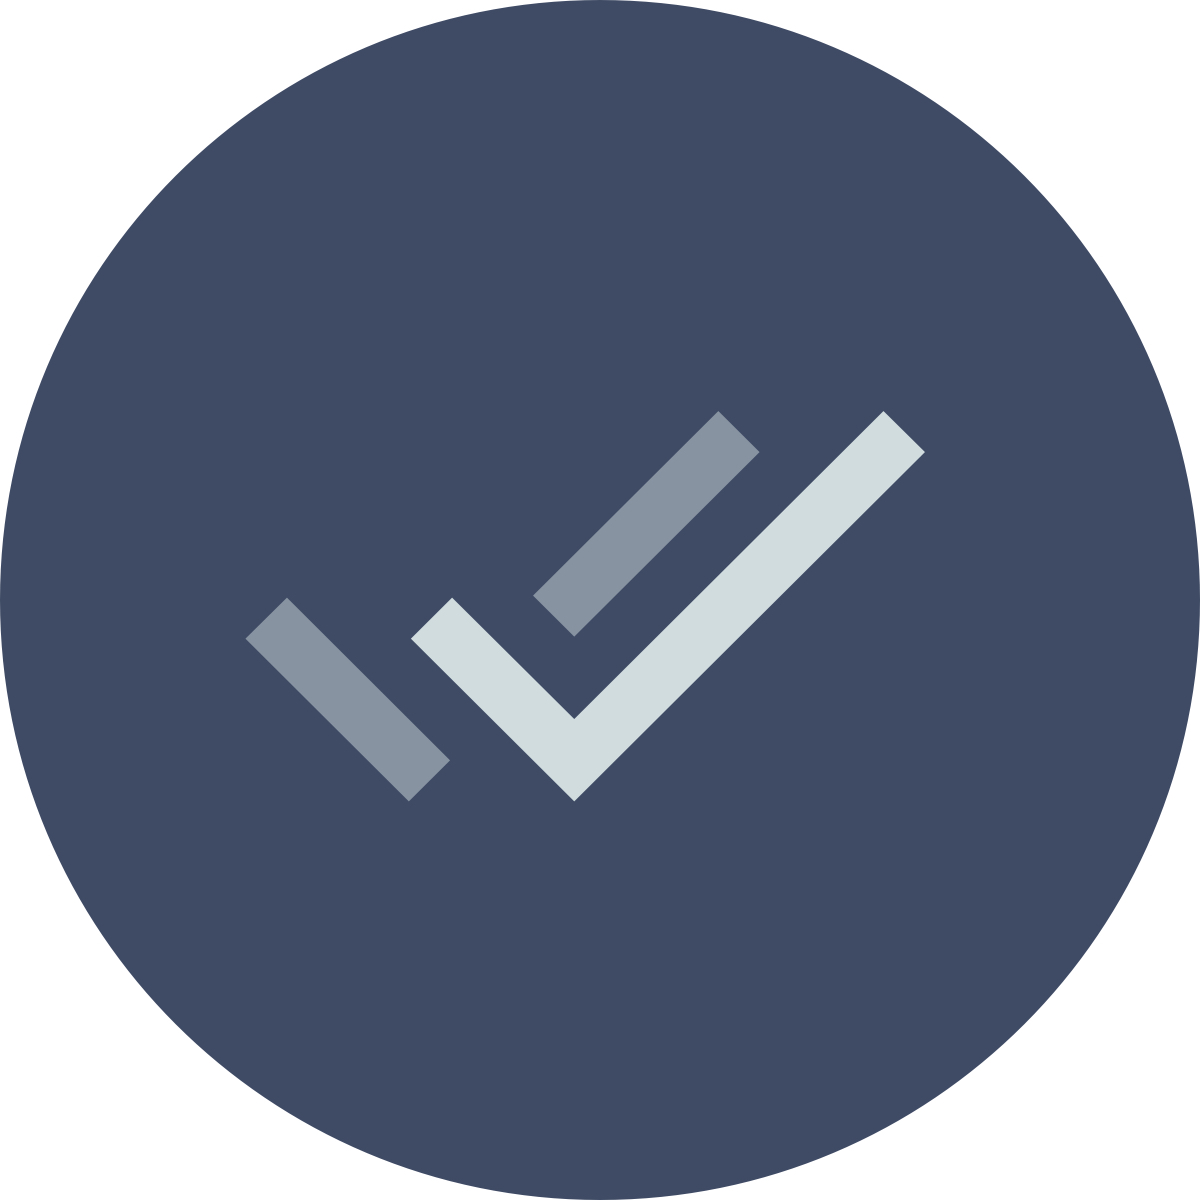 A dark blue circular icon with gray check mark in the center.